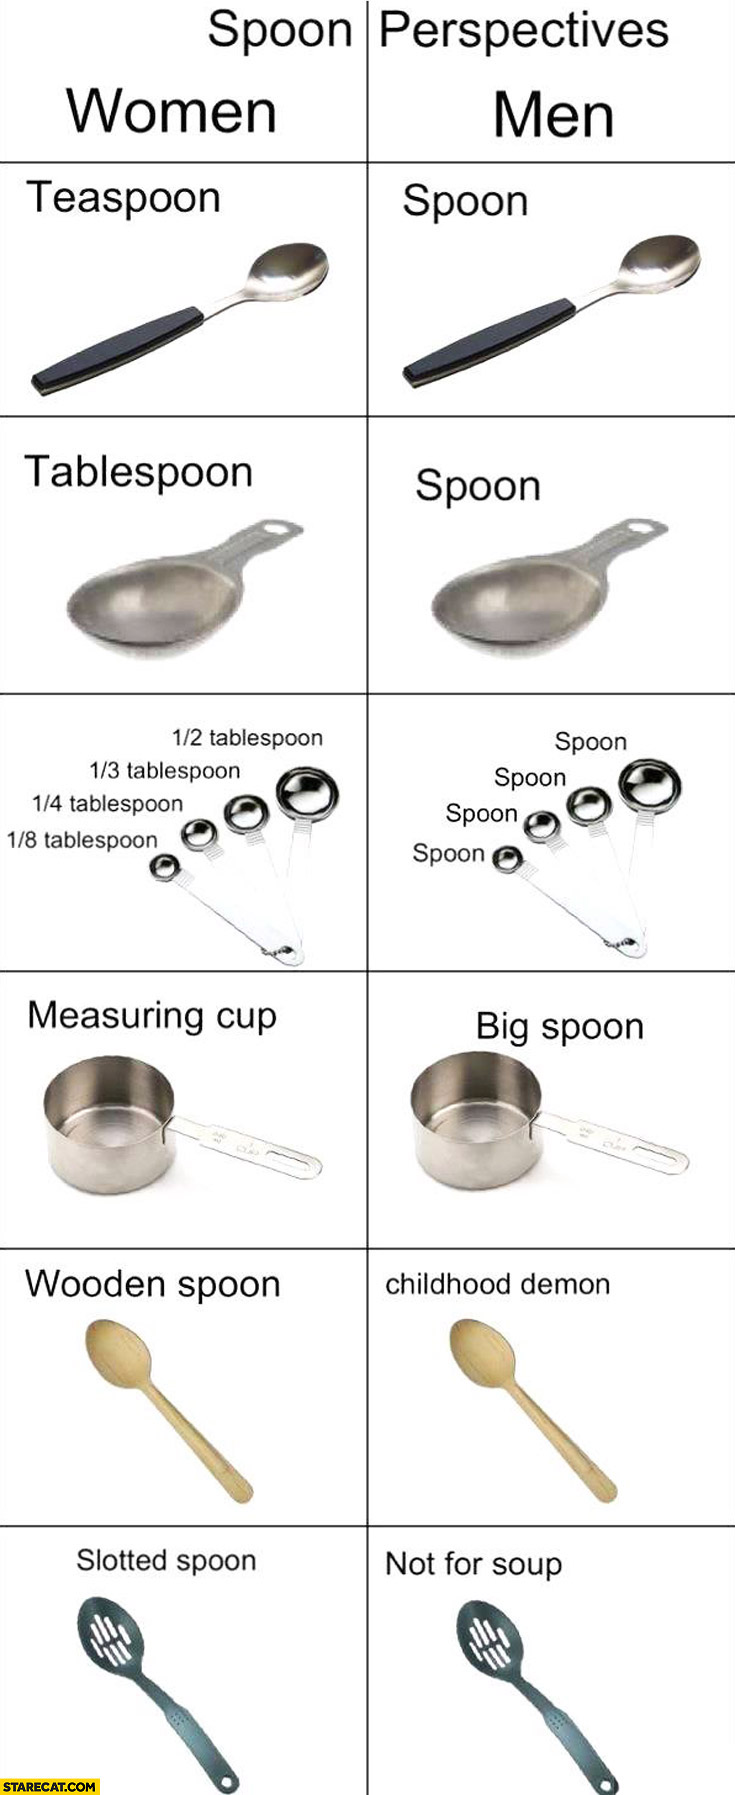 Spoon perspectives men vs women